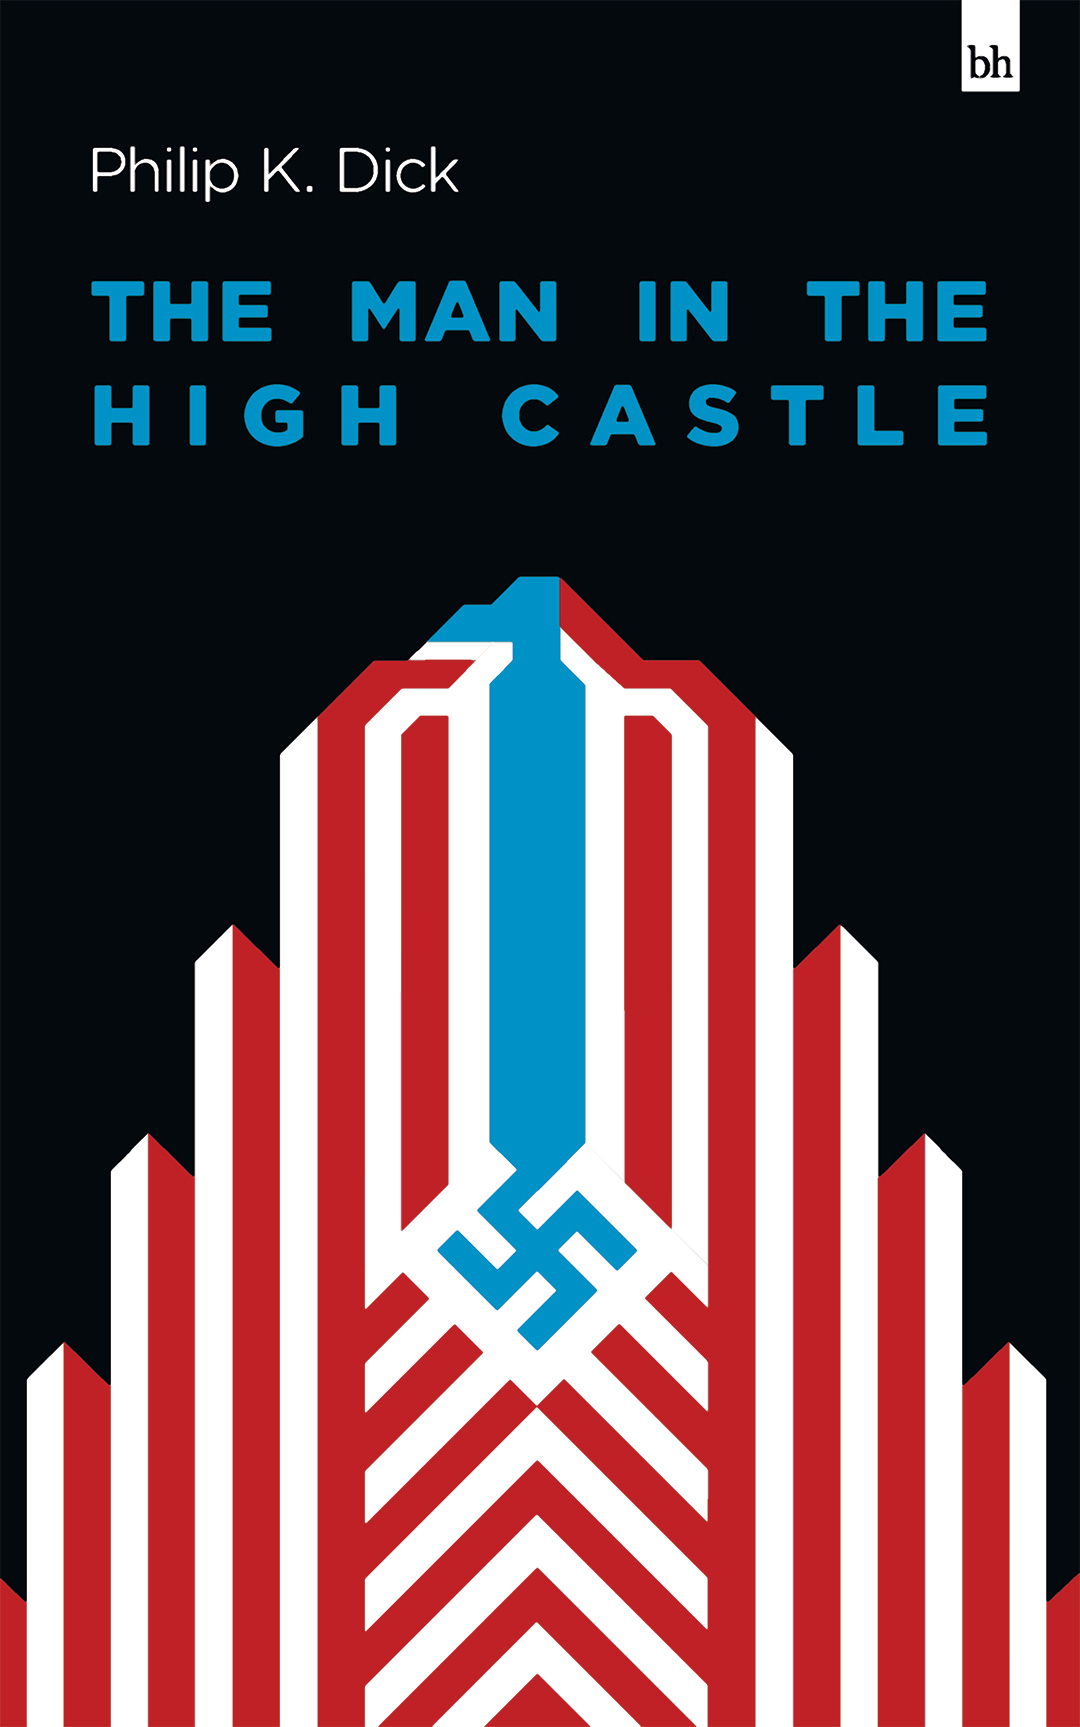 The Man in the High Castle by Philip K Dick